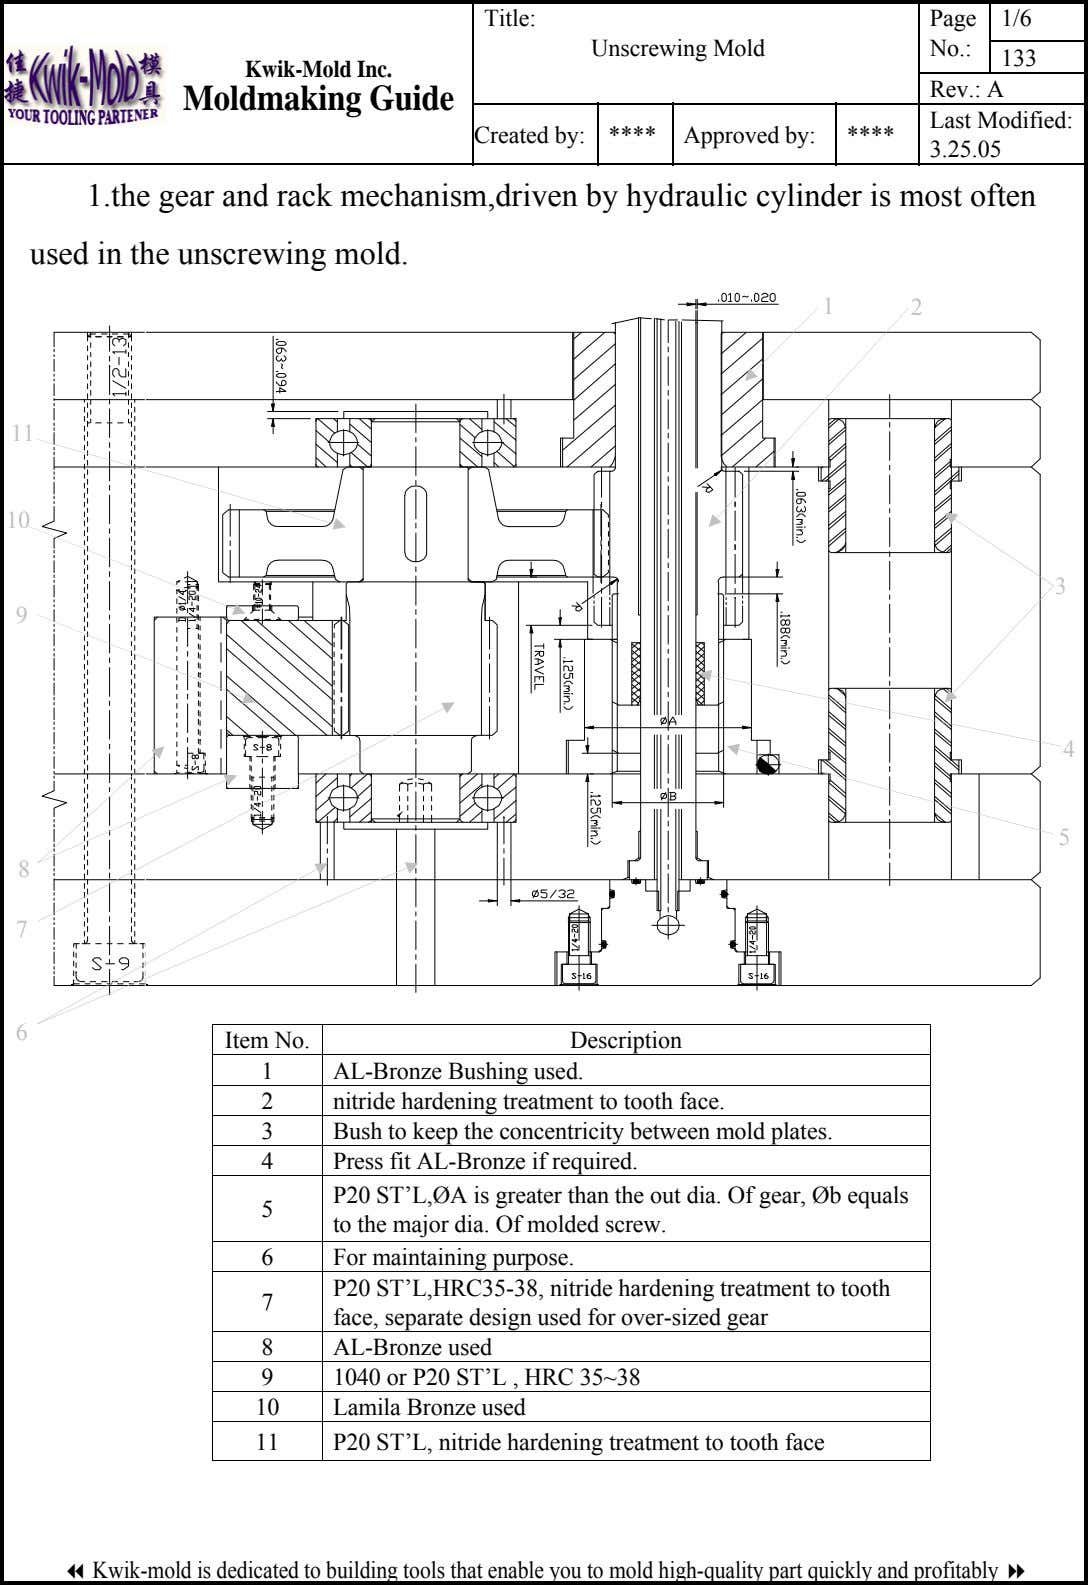 Title: Page 1/6 Unscrewing Mold No.: 133 Kwik-Mold Inc. Rev.: A Moldmaking Guide Last Modified: